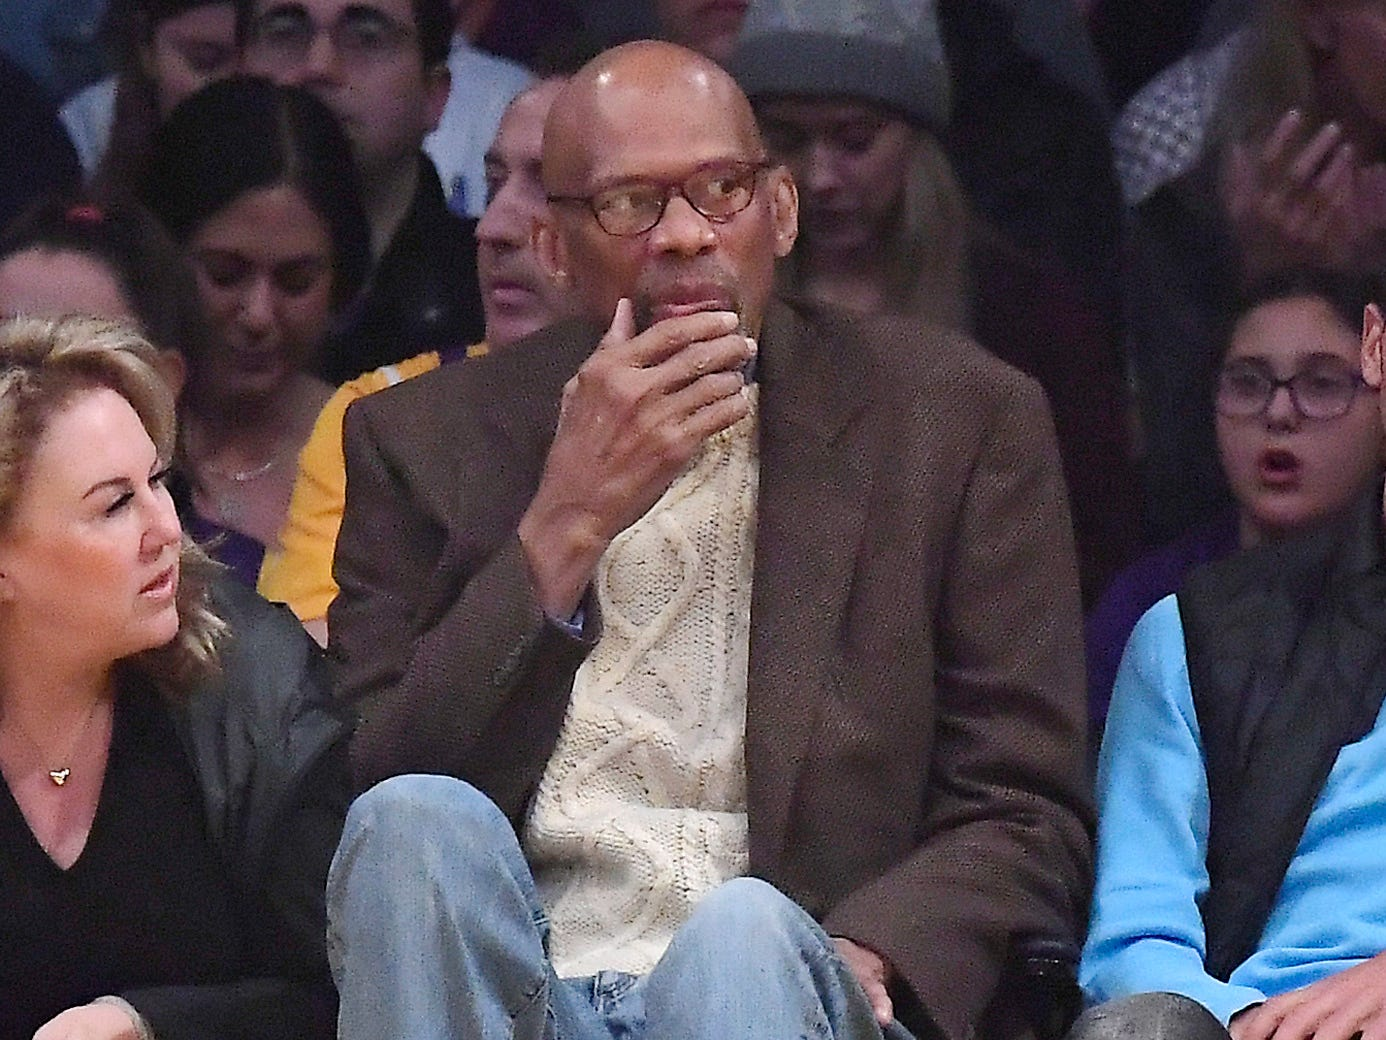 Kareem Abdul-Jabbar watches the Lakers and Bucks, his former teams, square off against each other from his courtside seat Friday night at Staples Center.